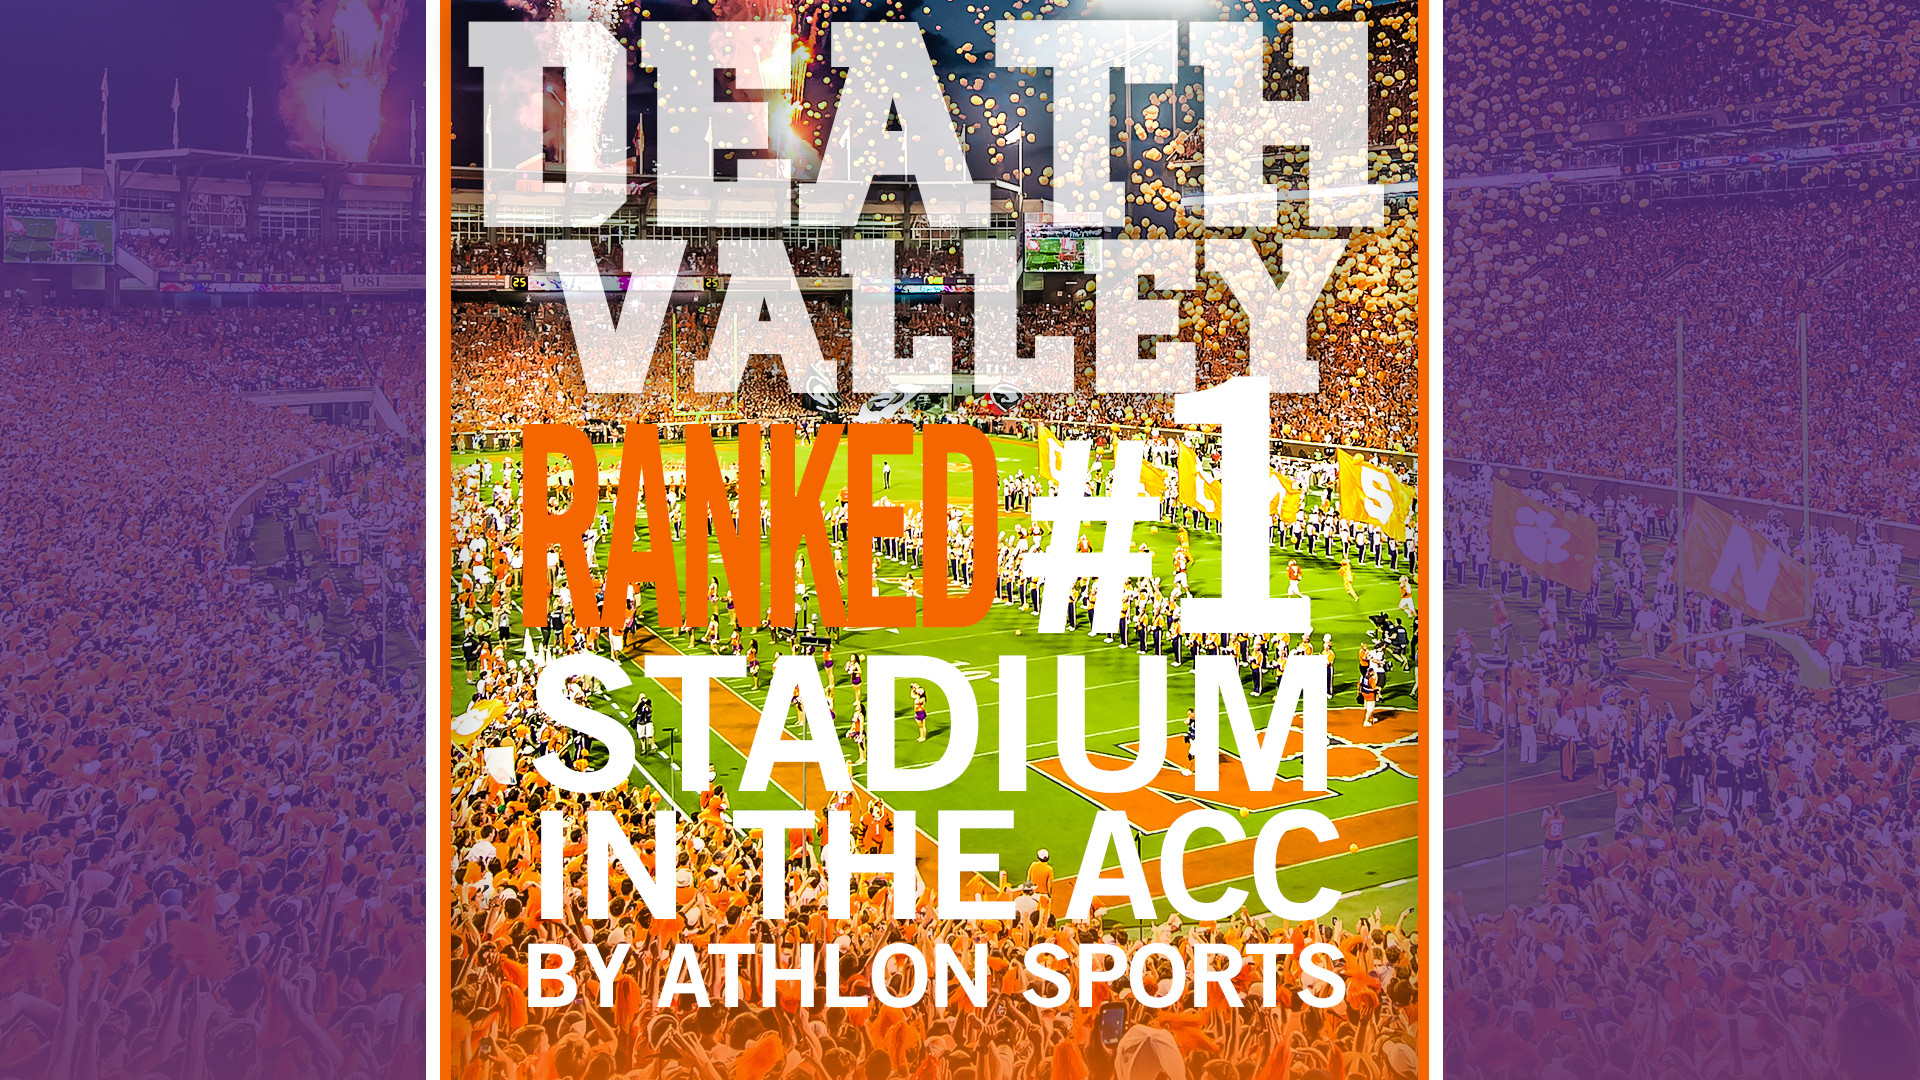 Clemson?s Death Valley Ranked as Top ACC Stadium